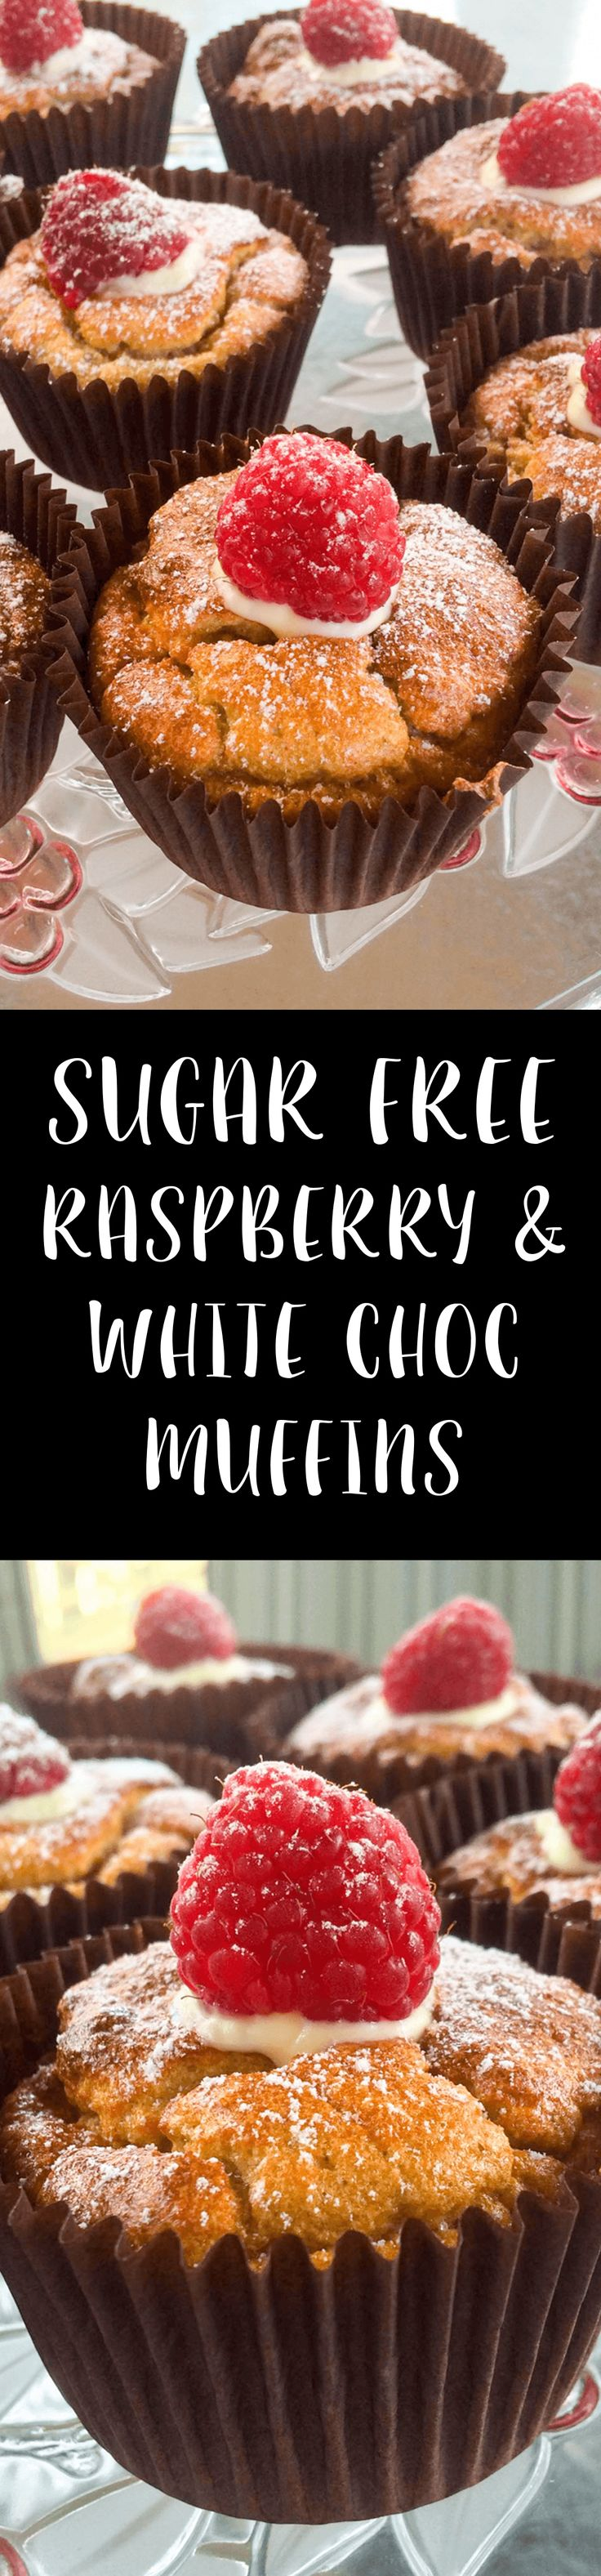 Sugar Free Raspberry and White Chocolate Muffins | Slimming World